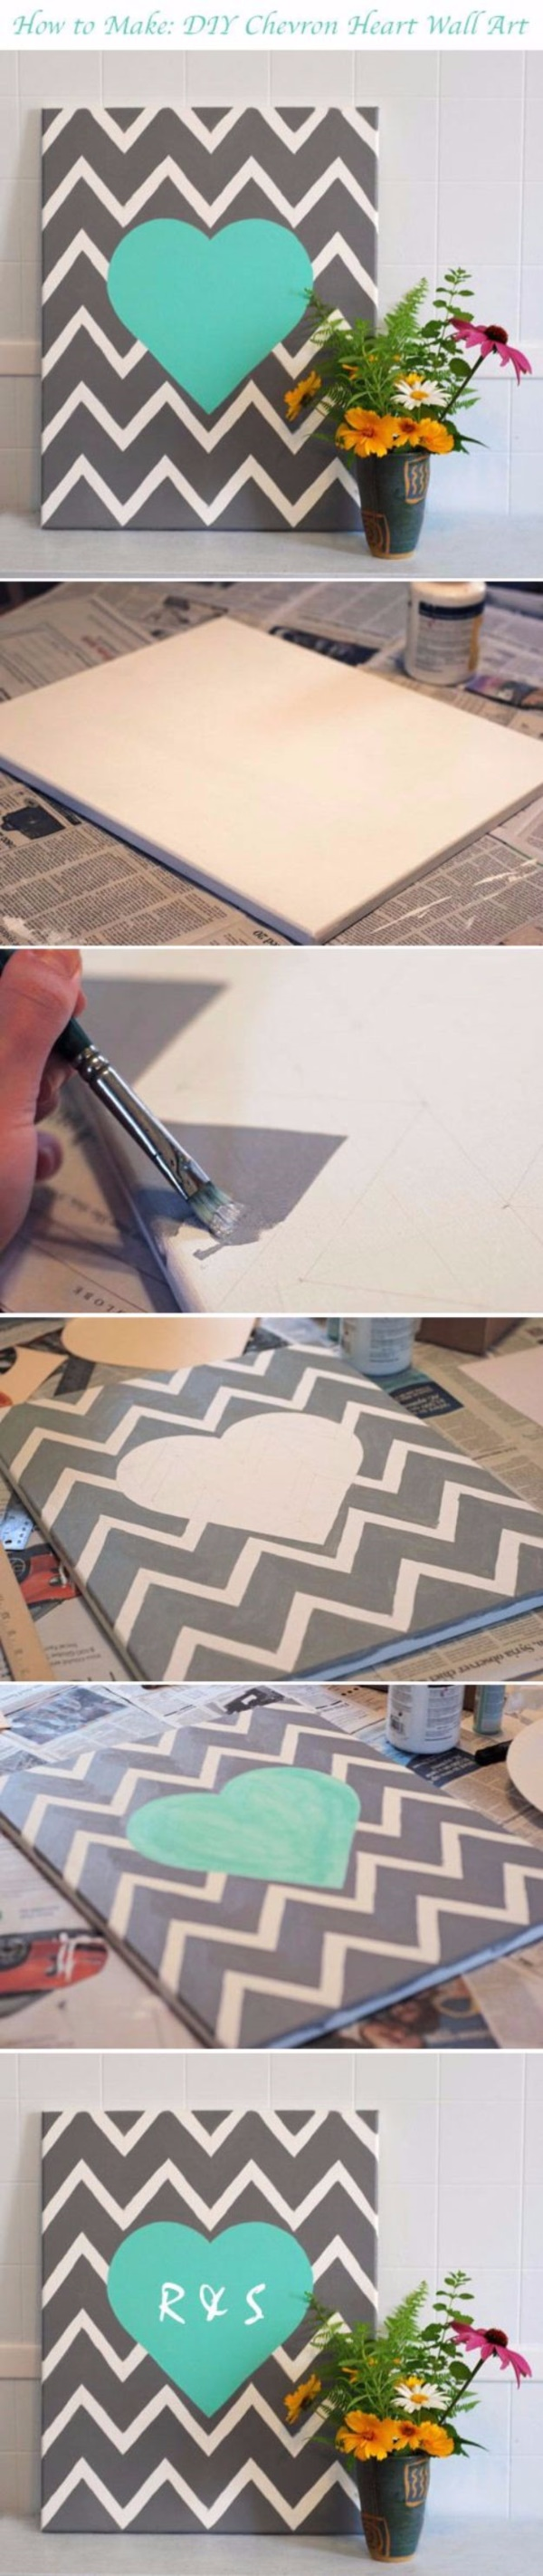 diy-canvas-painting-ideas-for-home-wall-decoration